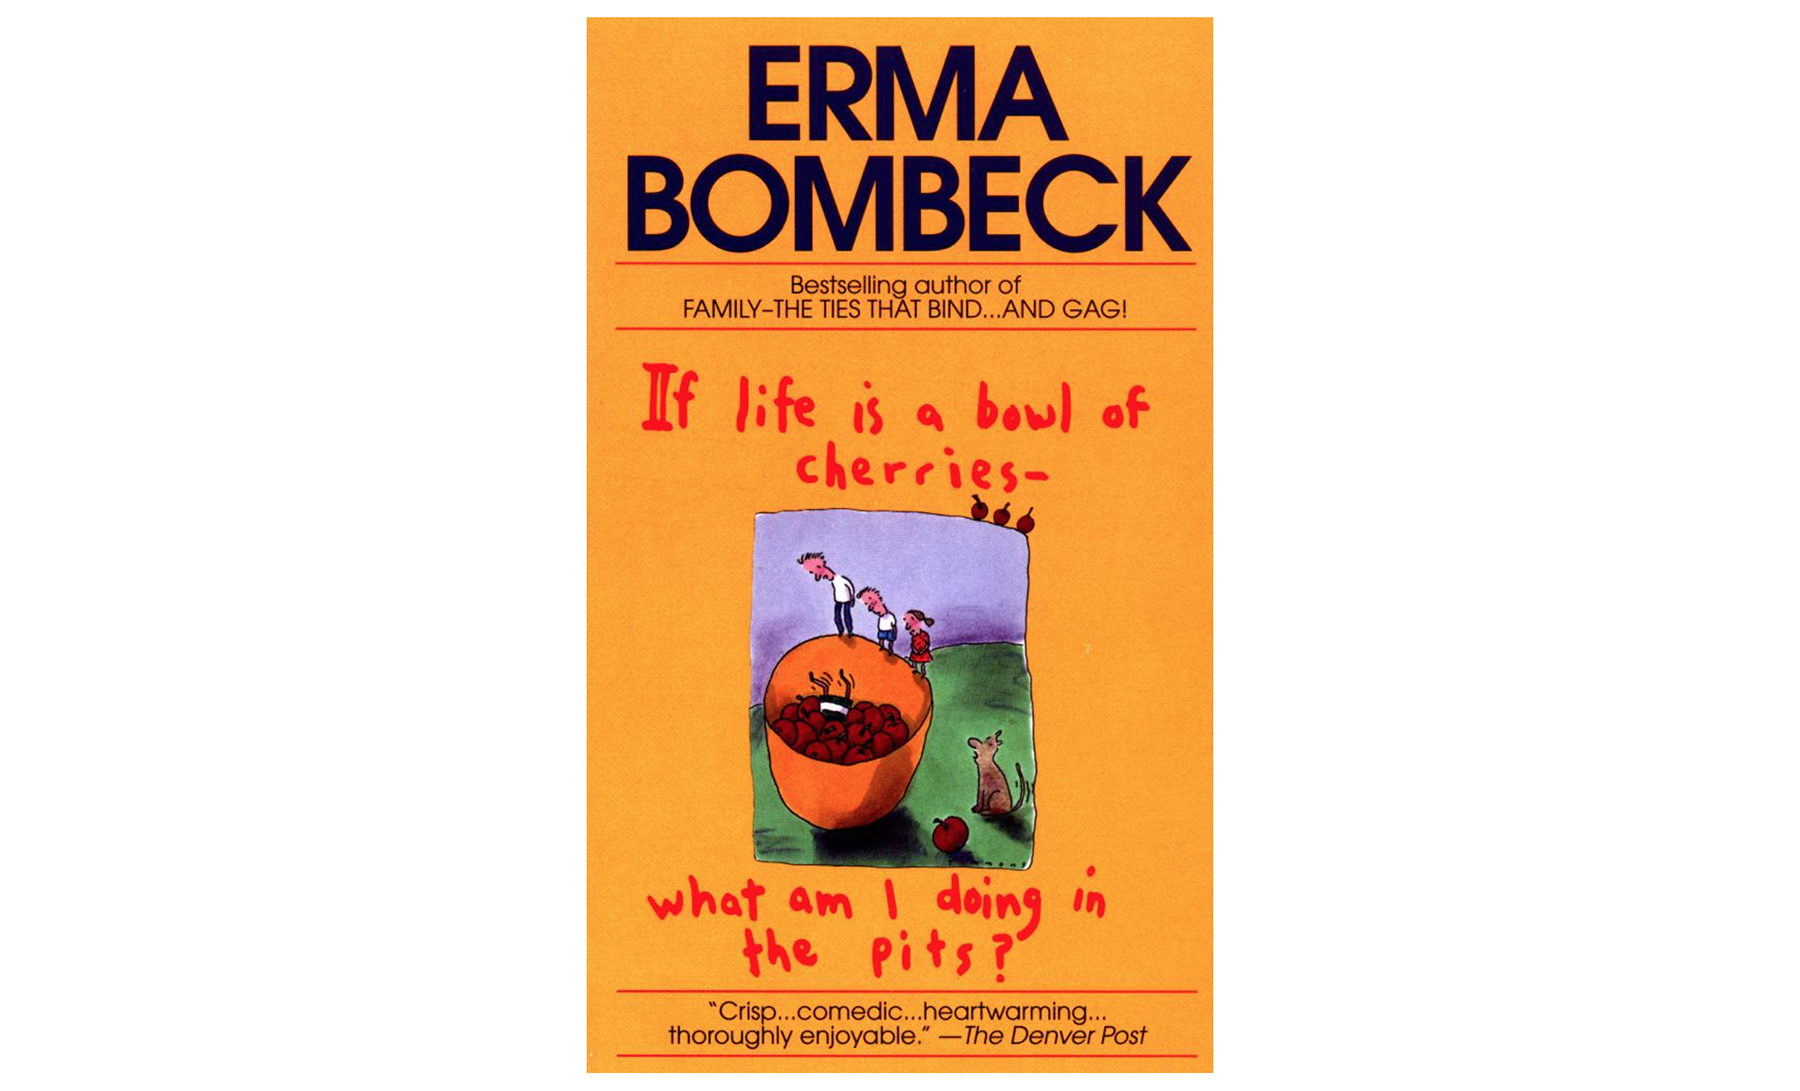 ‪If Life Is a Bowl of Cherries, What am I Doing in the Pits? by Erma Bombeck